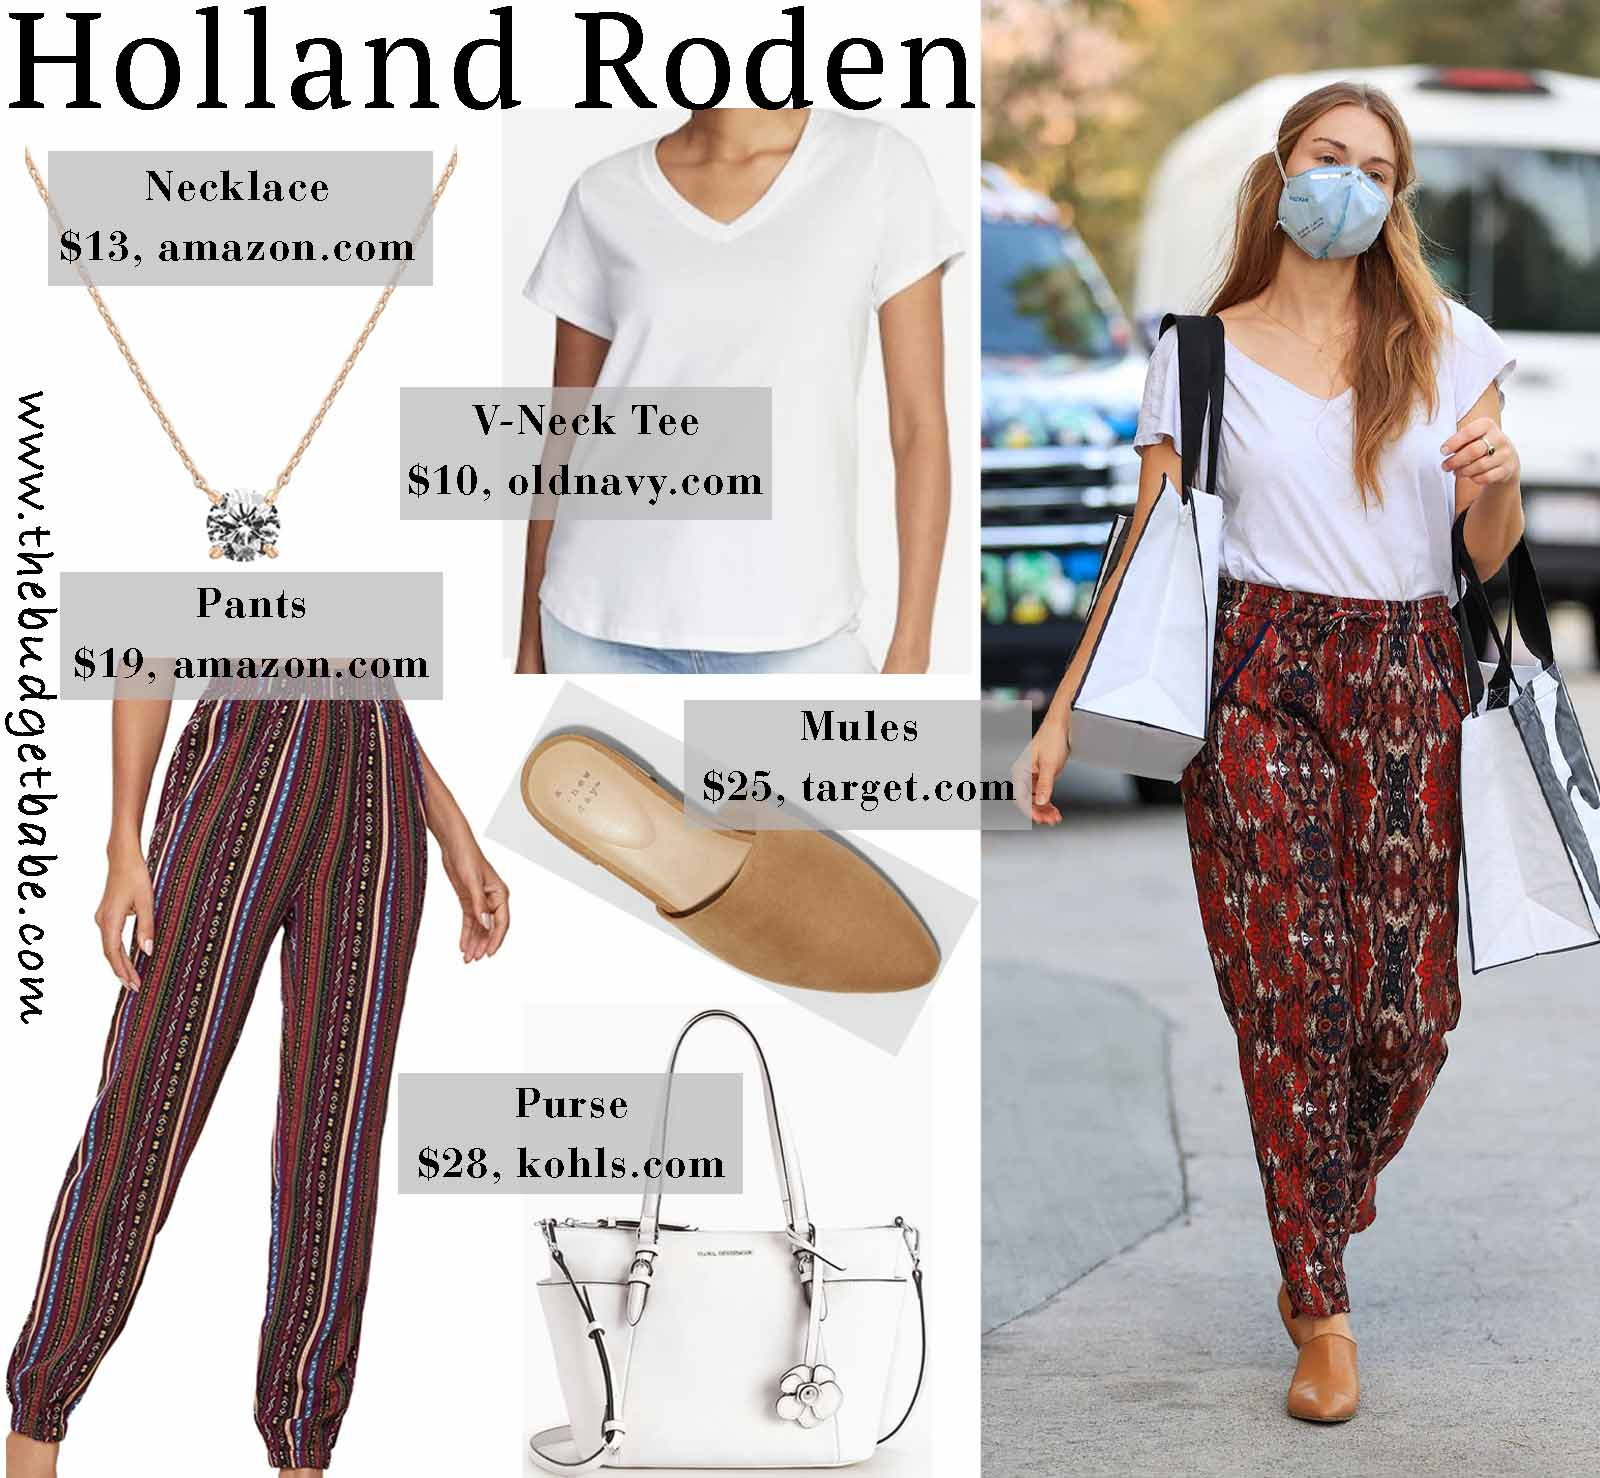 Holland's joggers are amazing!